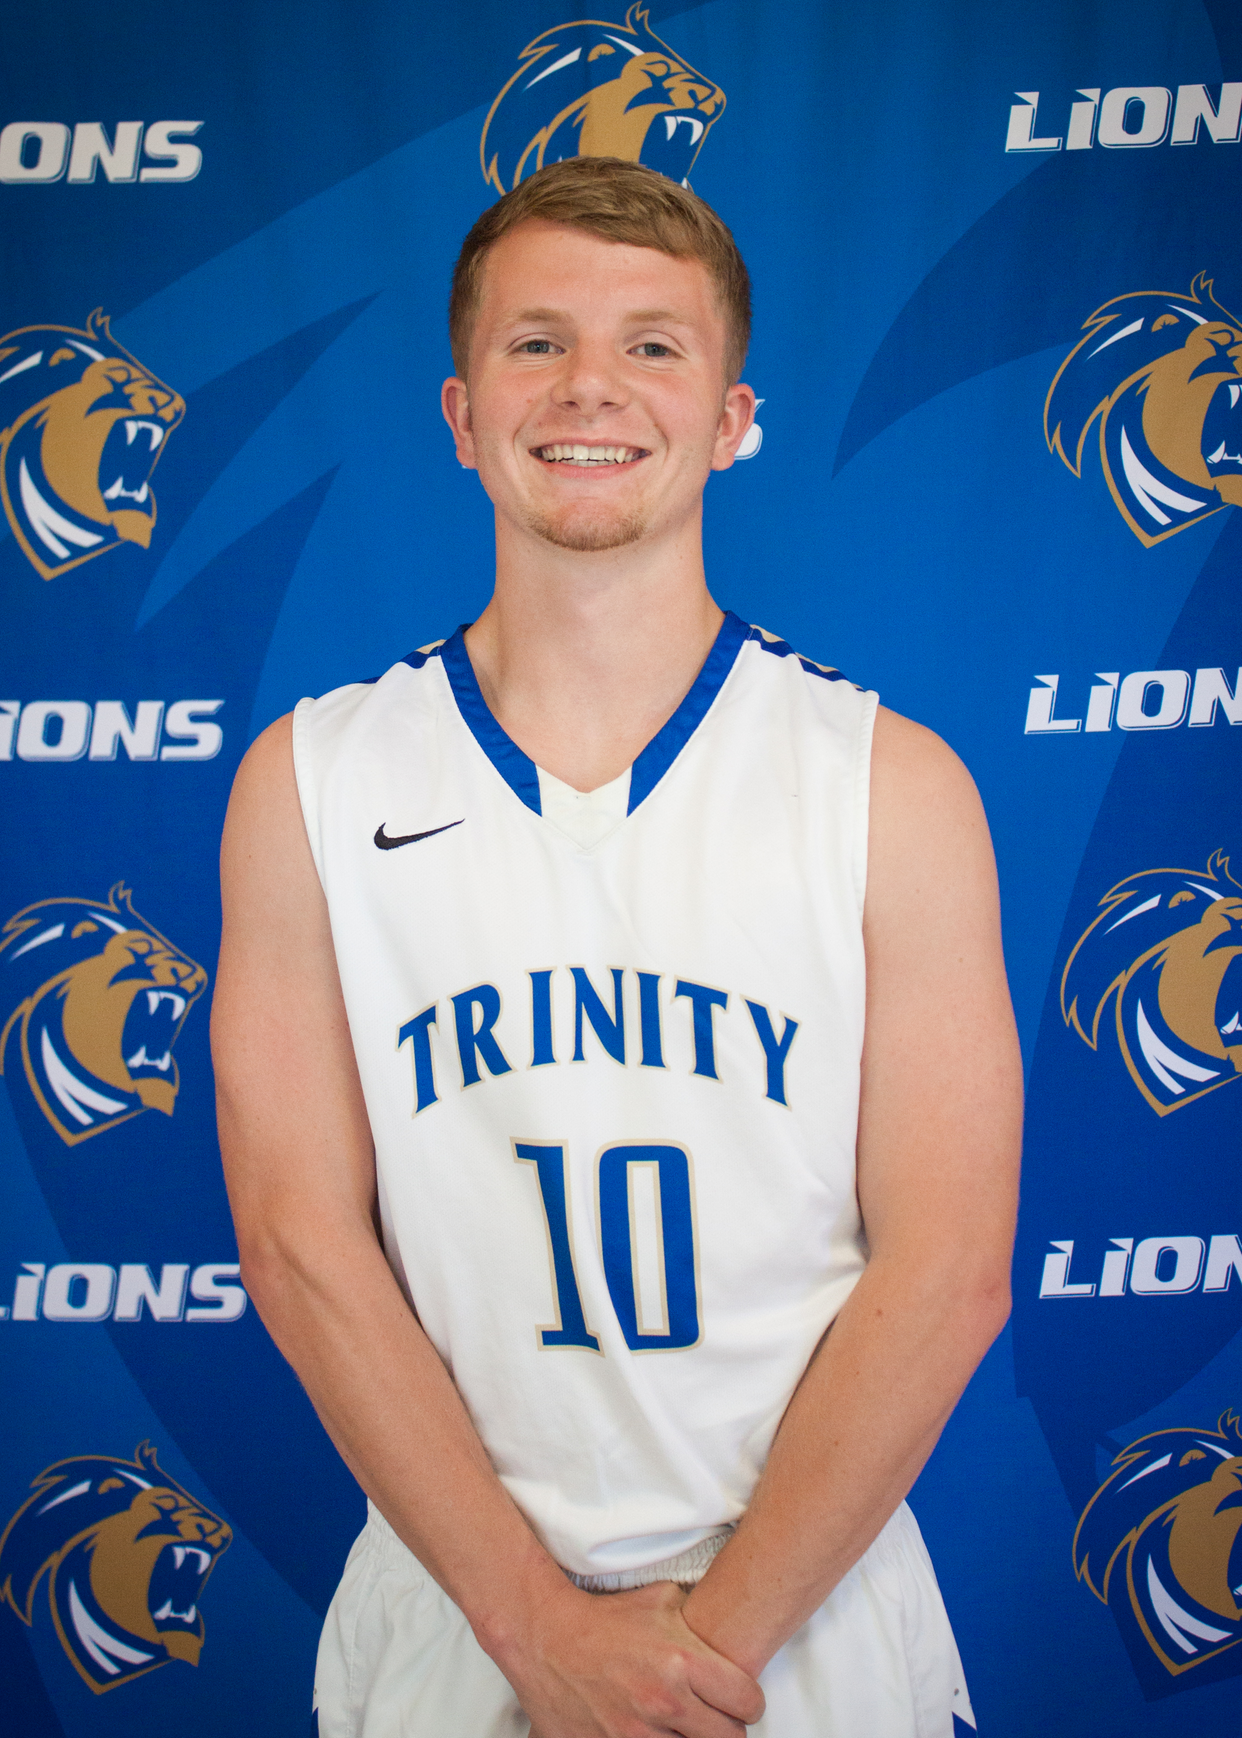 Shockley Breaks Lions MBB Career 3pt Record in Win